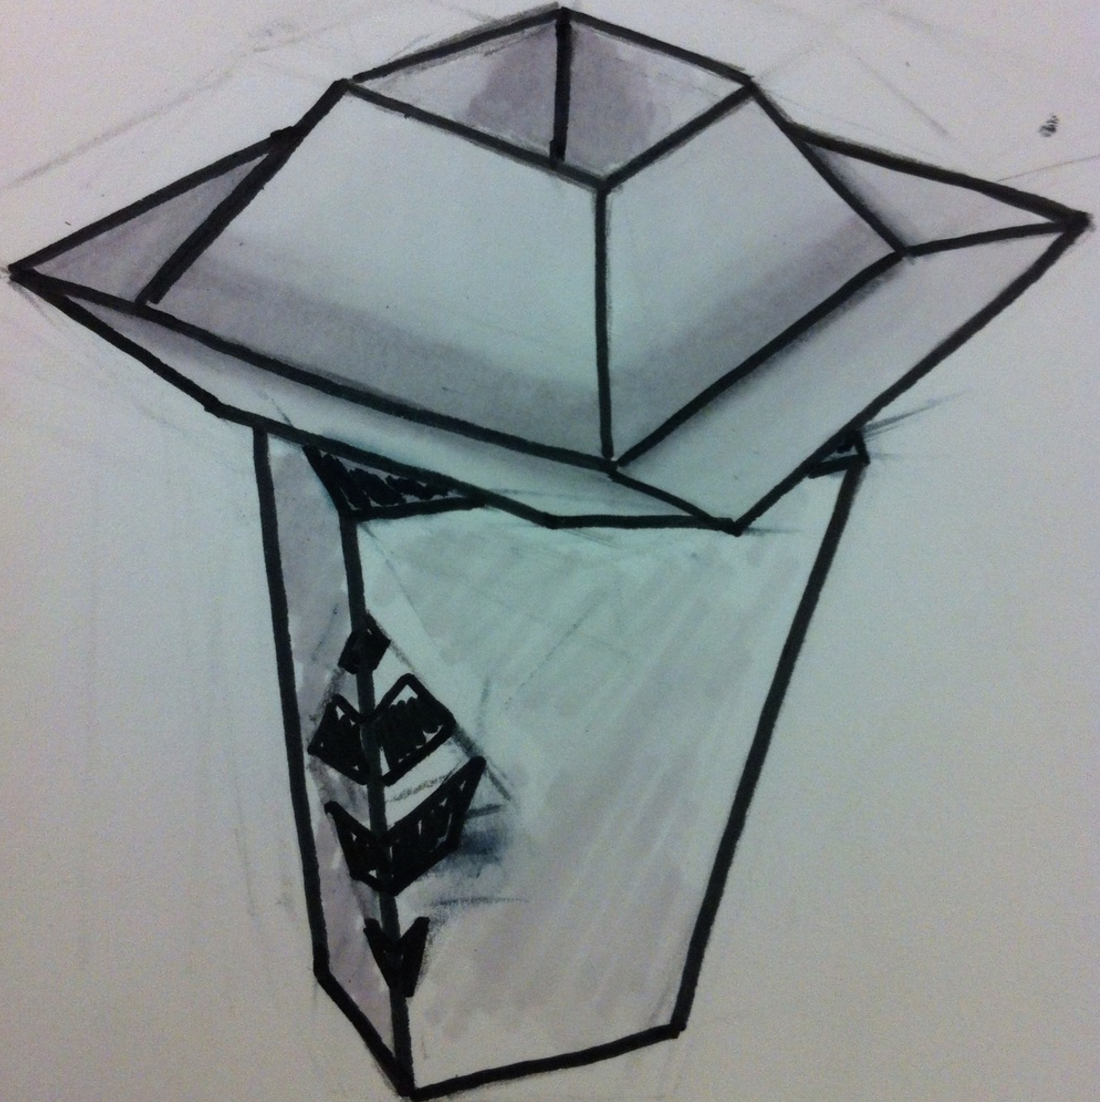 1st Design:   stablishment of trapezoid and stacking themes.